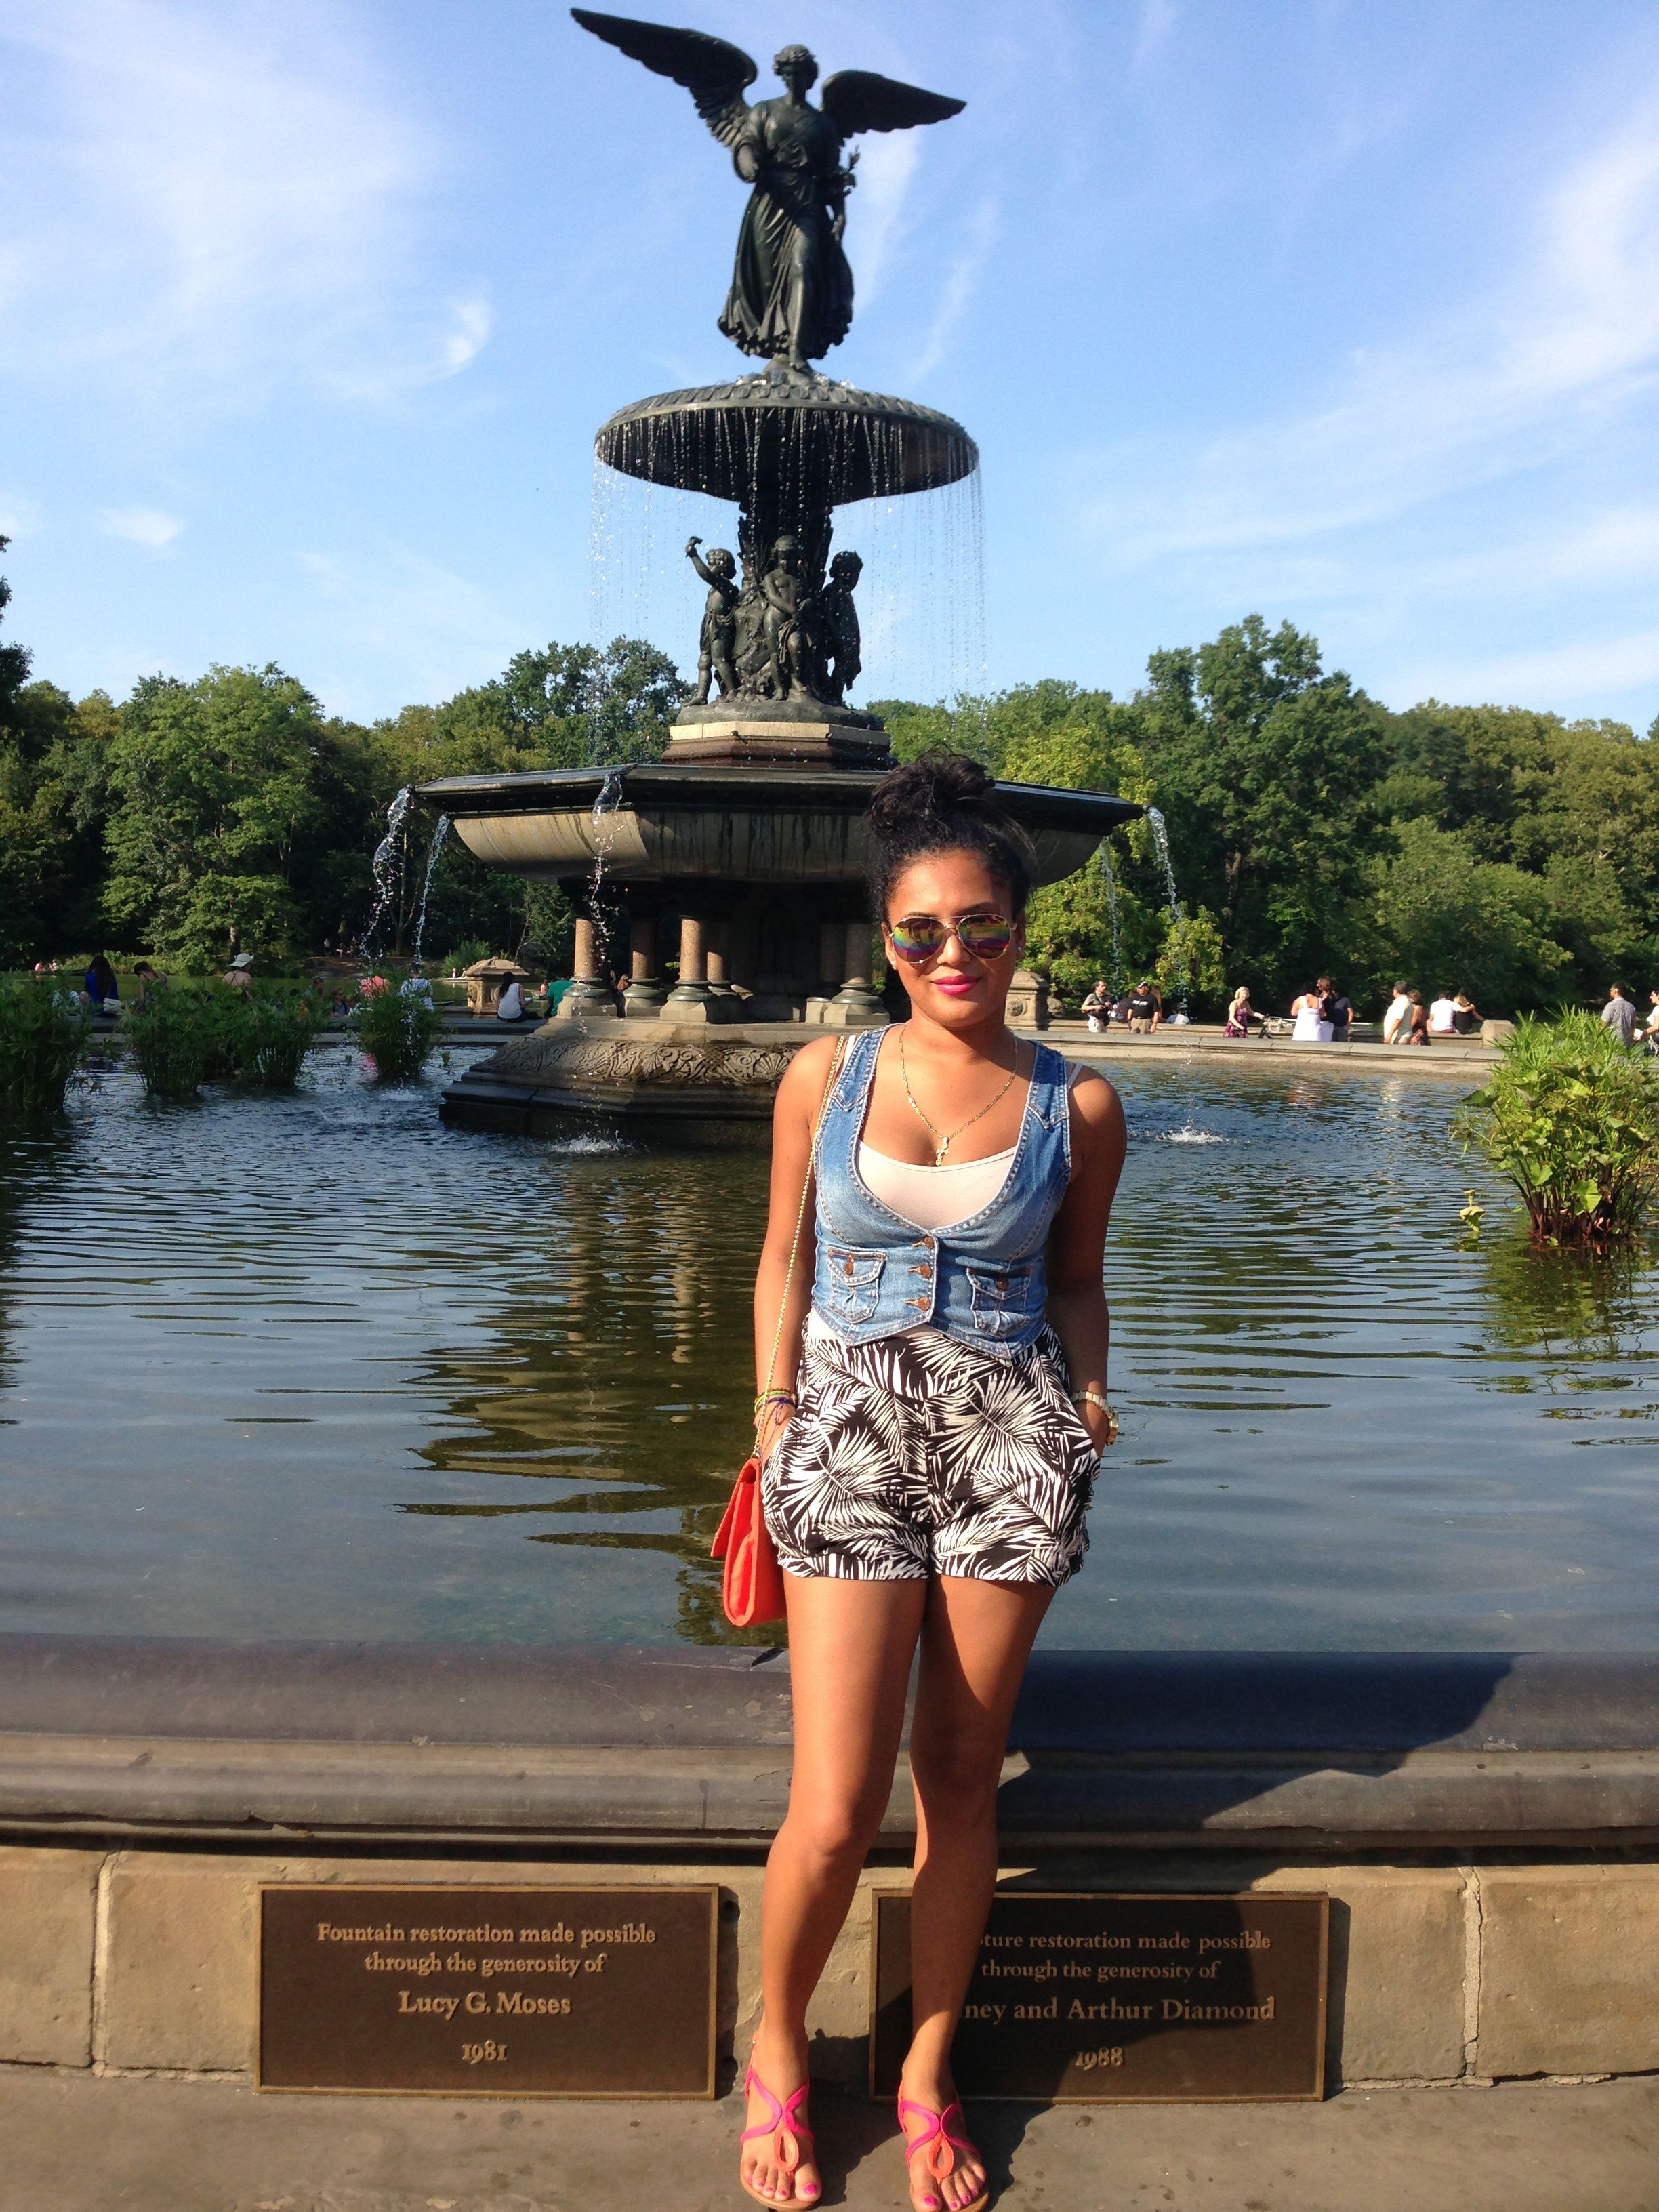 Our Butterfly @mari_posa_08 explores Central Park